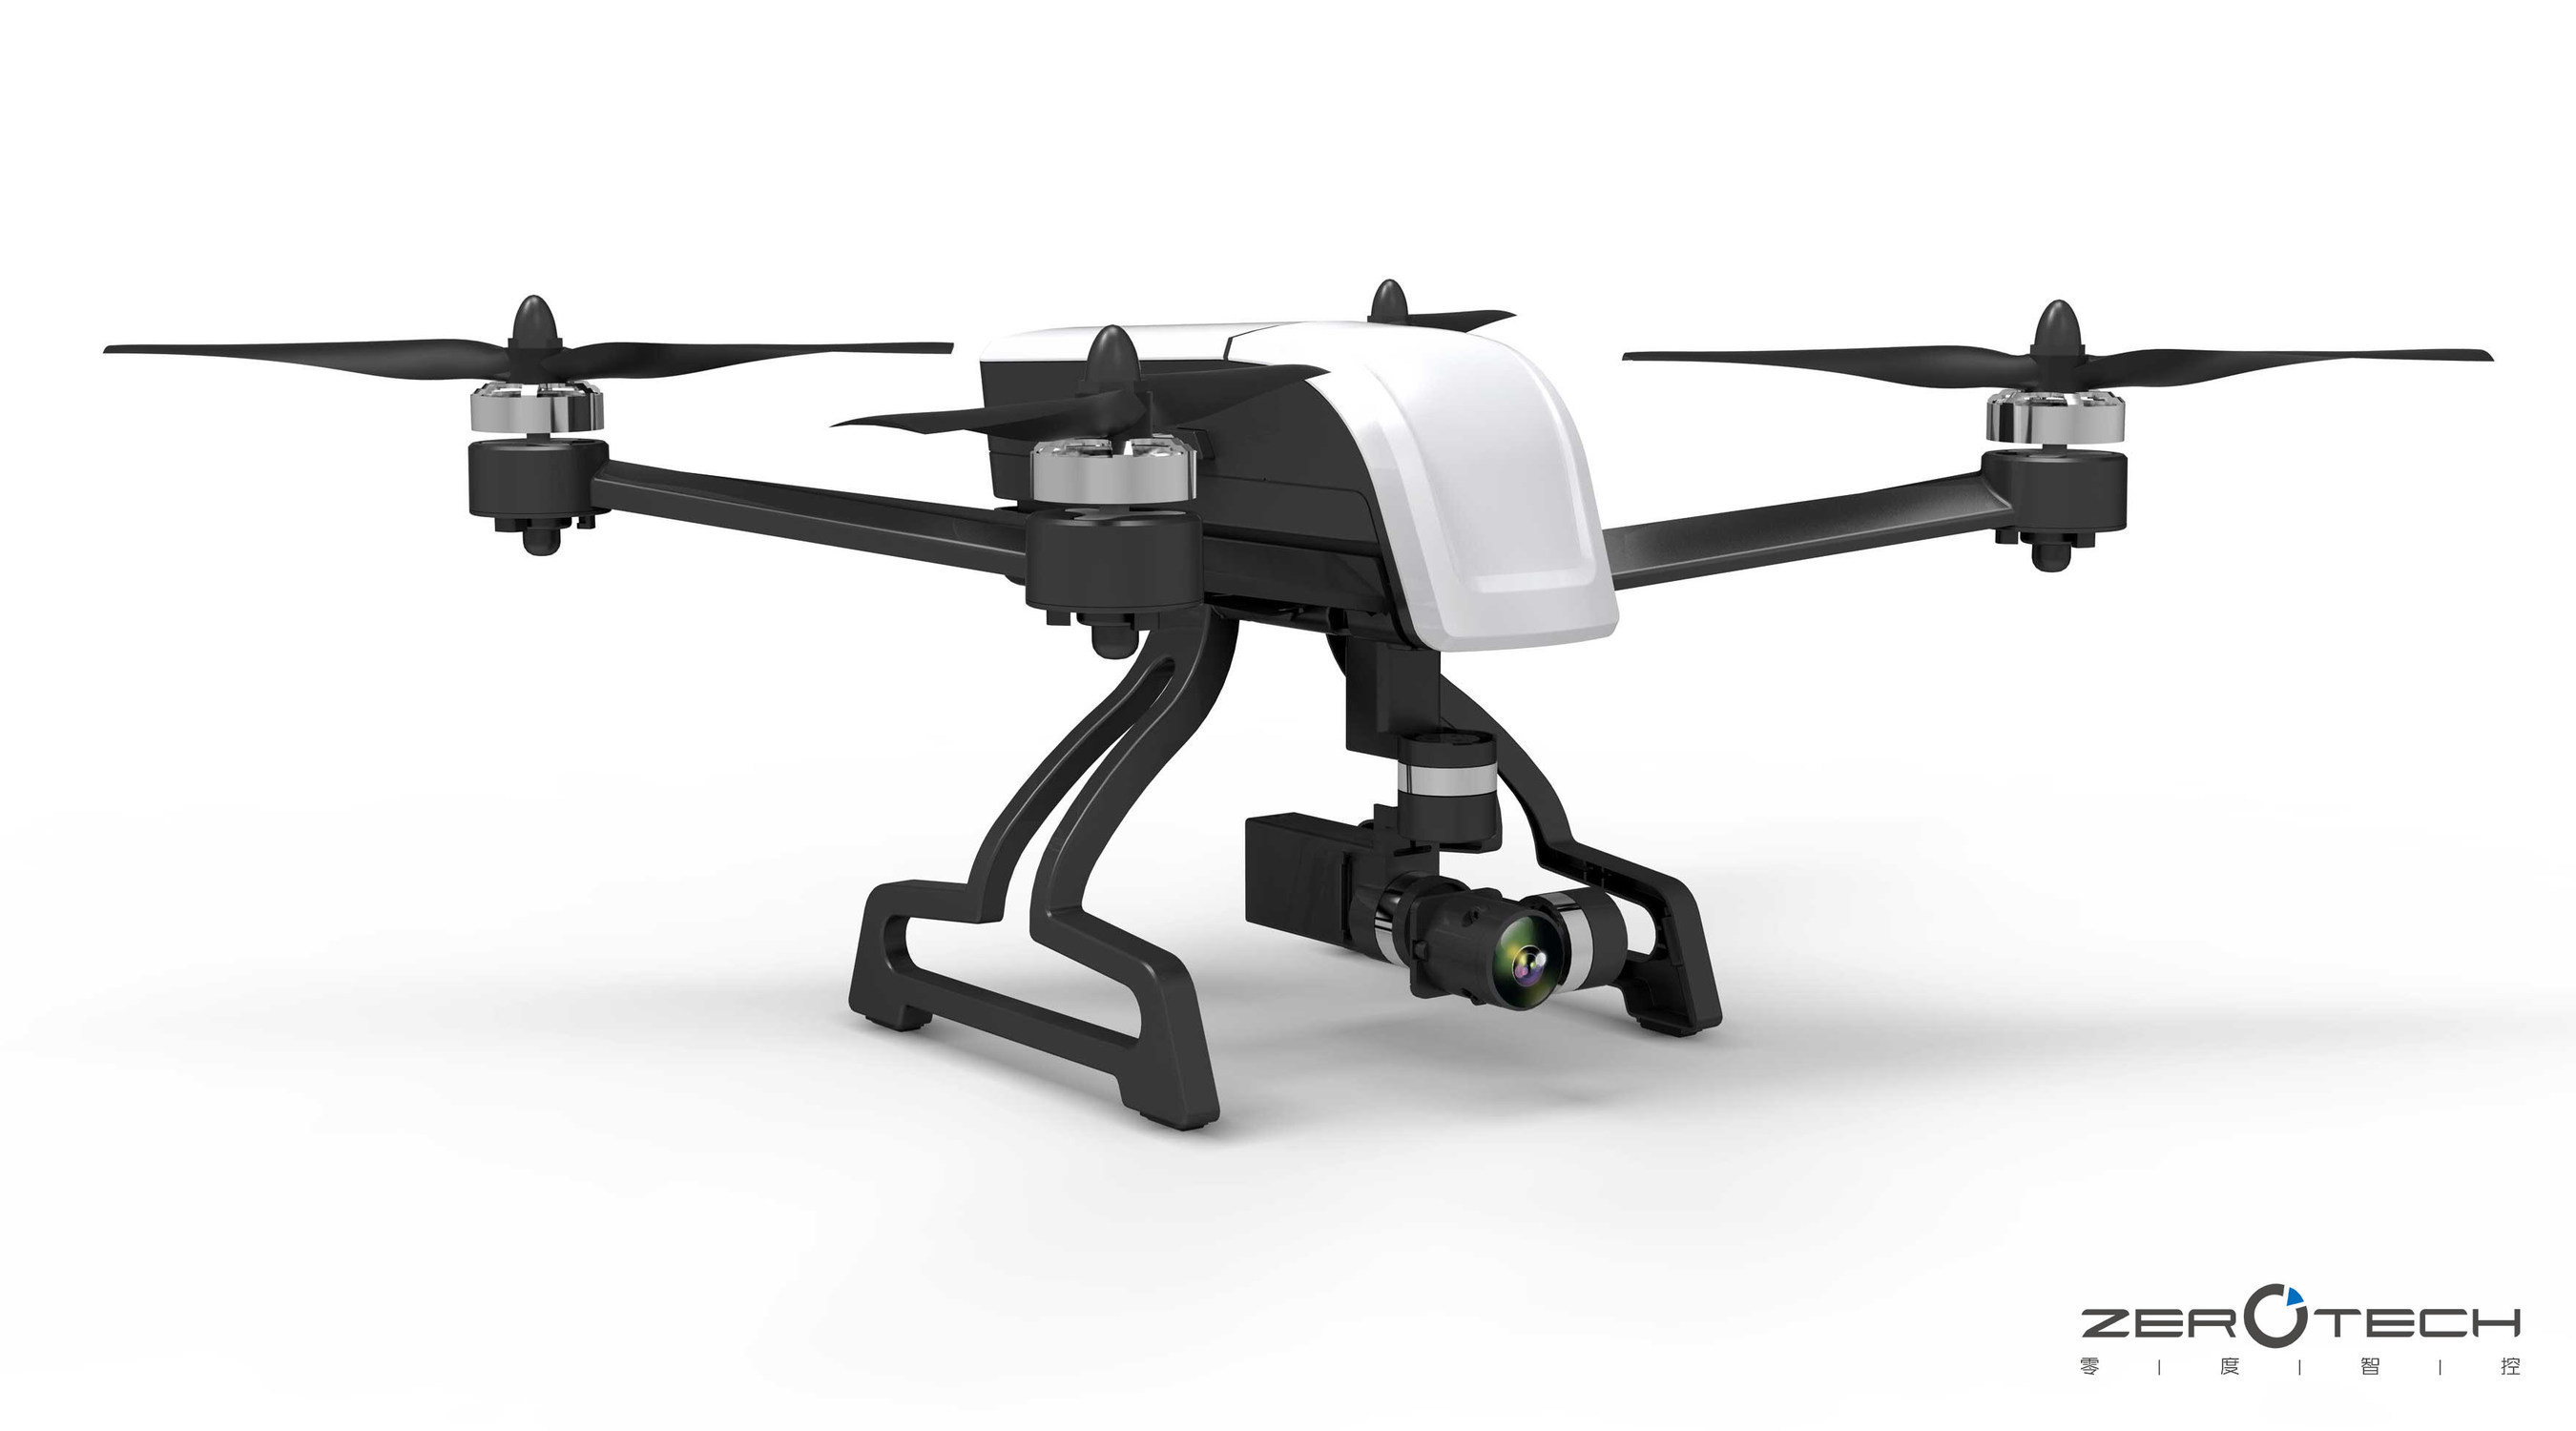 The World Leader in Professional Drones-ZEROTECH Debuts the Most Compact 4K Drone That Carries Mechanical Stabilization Gimbal at CES2016 Show